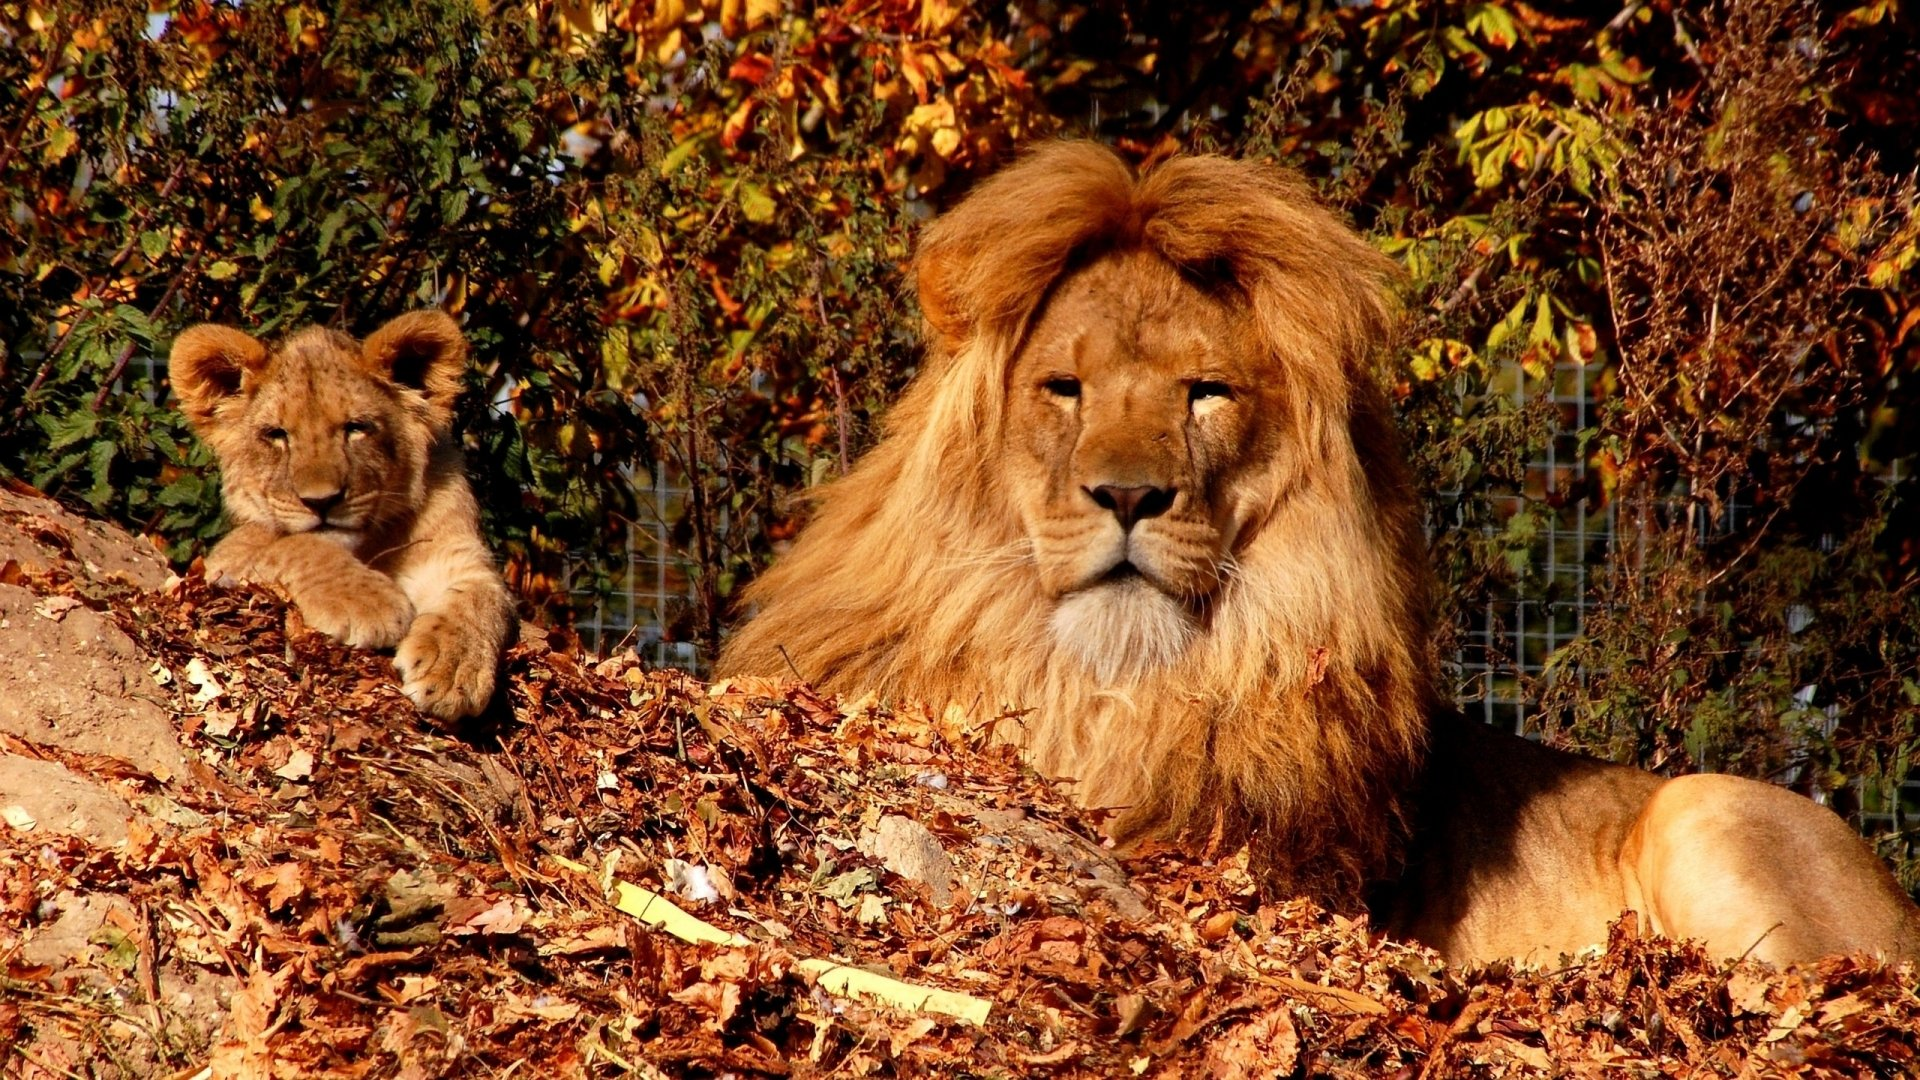 Fall Computer Wallpaper Hd Lion And His Cub 4k Ultra Hd Wallpaper Background Image